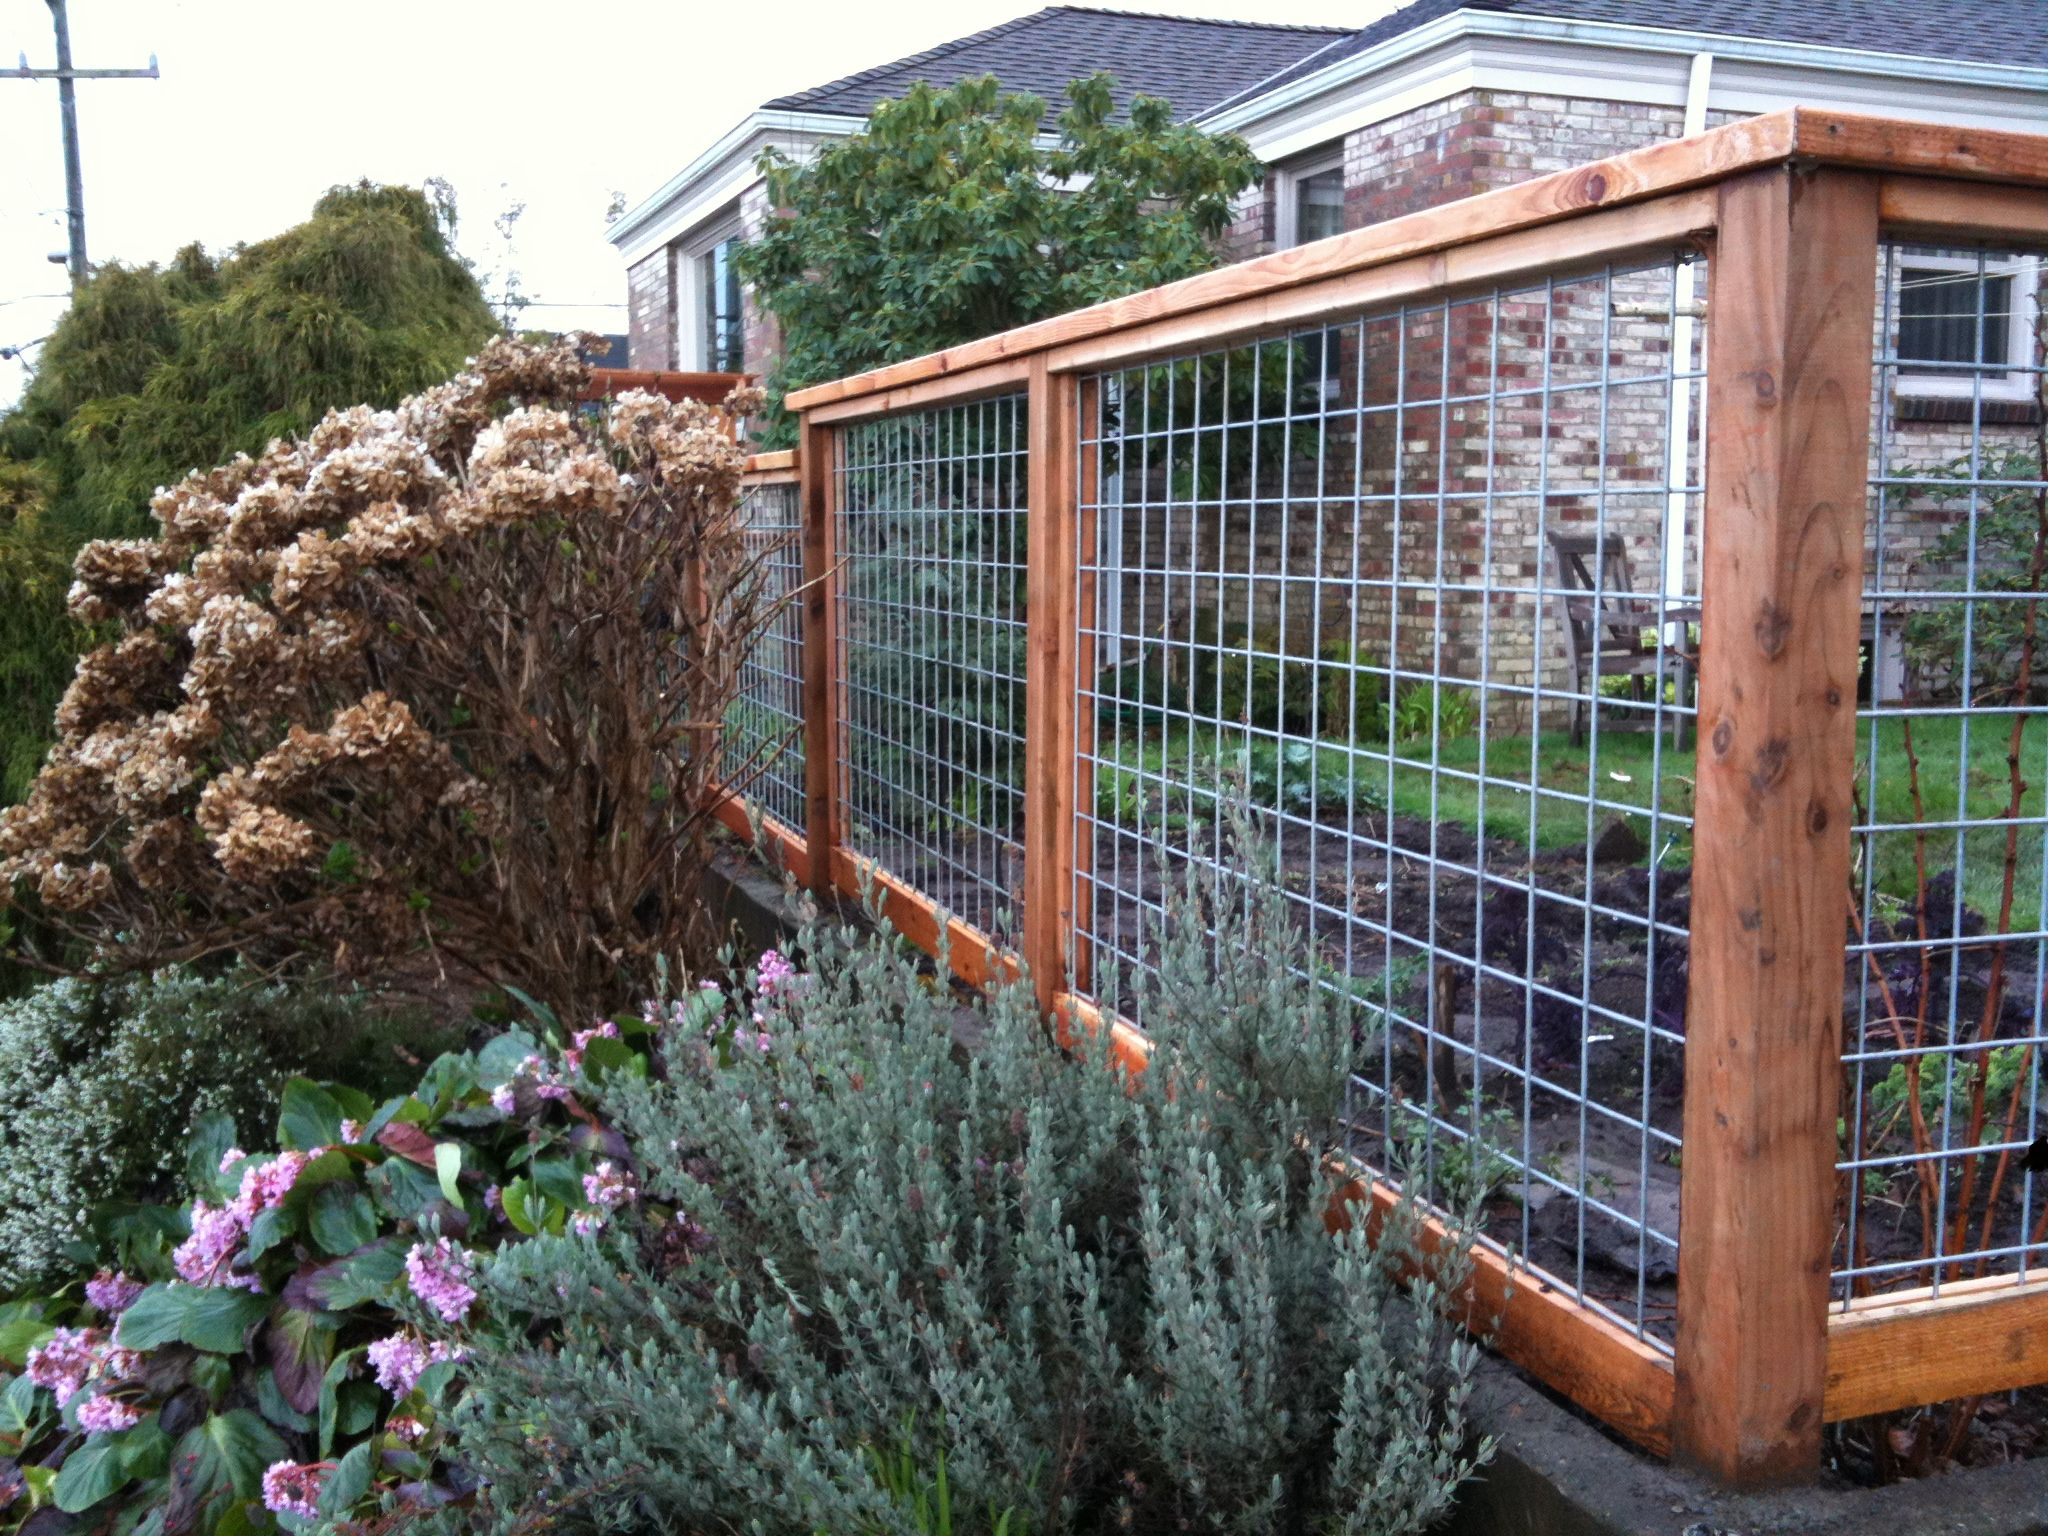 Country backyard garden ideas - Garden Fencing Designs On Wire Garden Fence Design Ideas Home Design Ideas This Would Be A Beautiful Fence For Our Yard